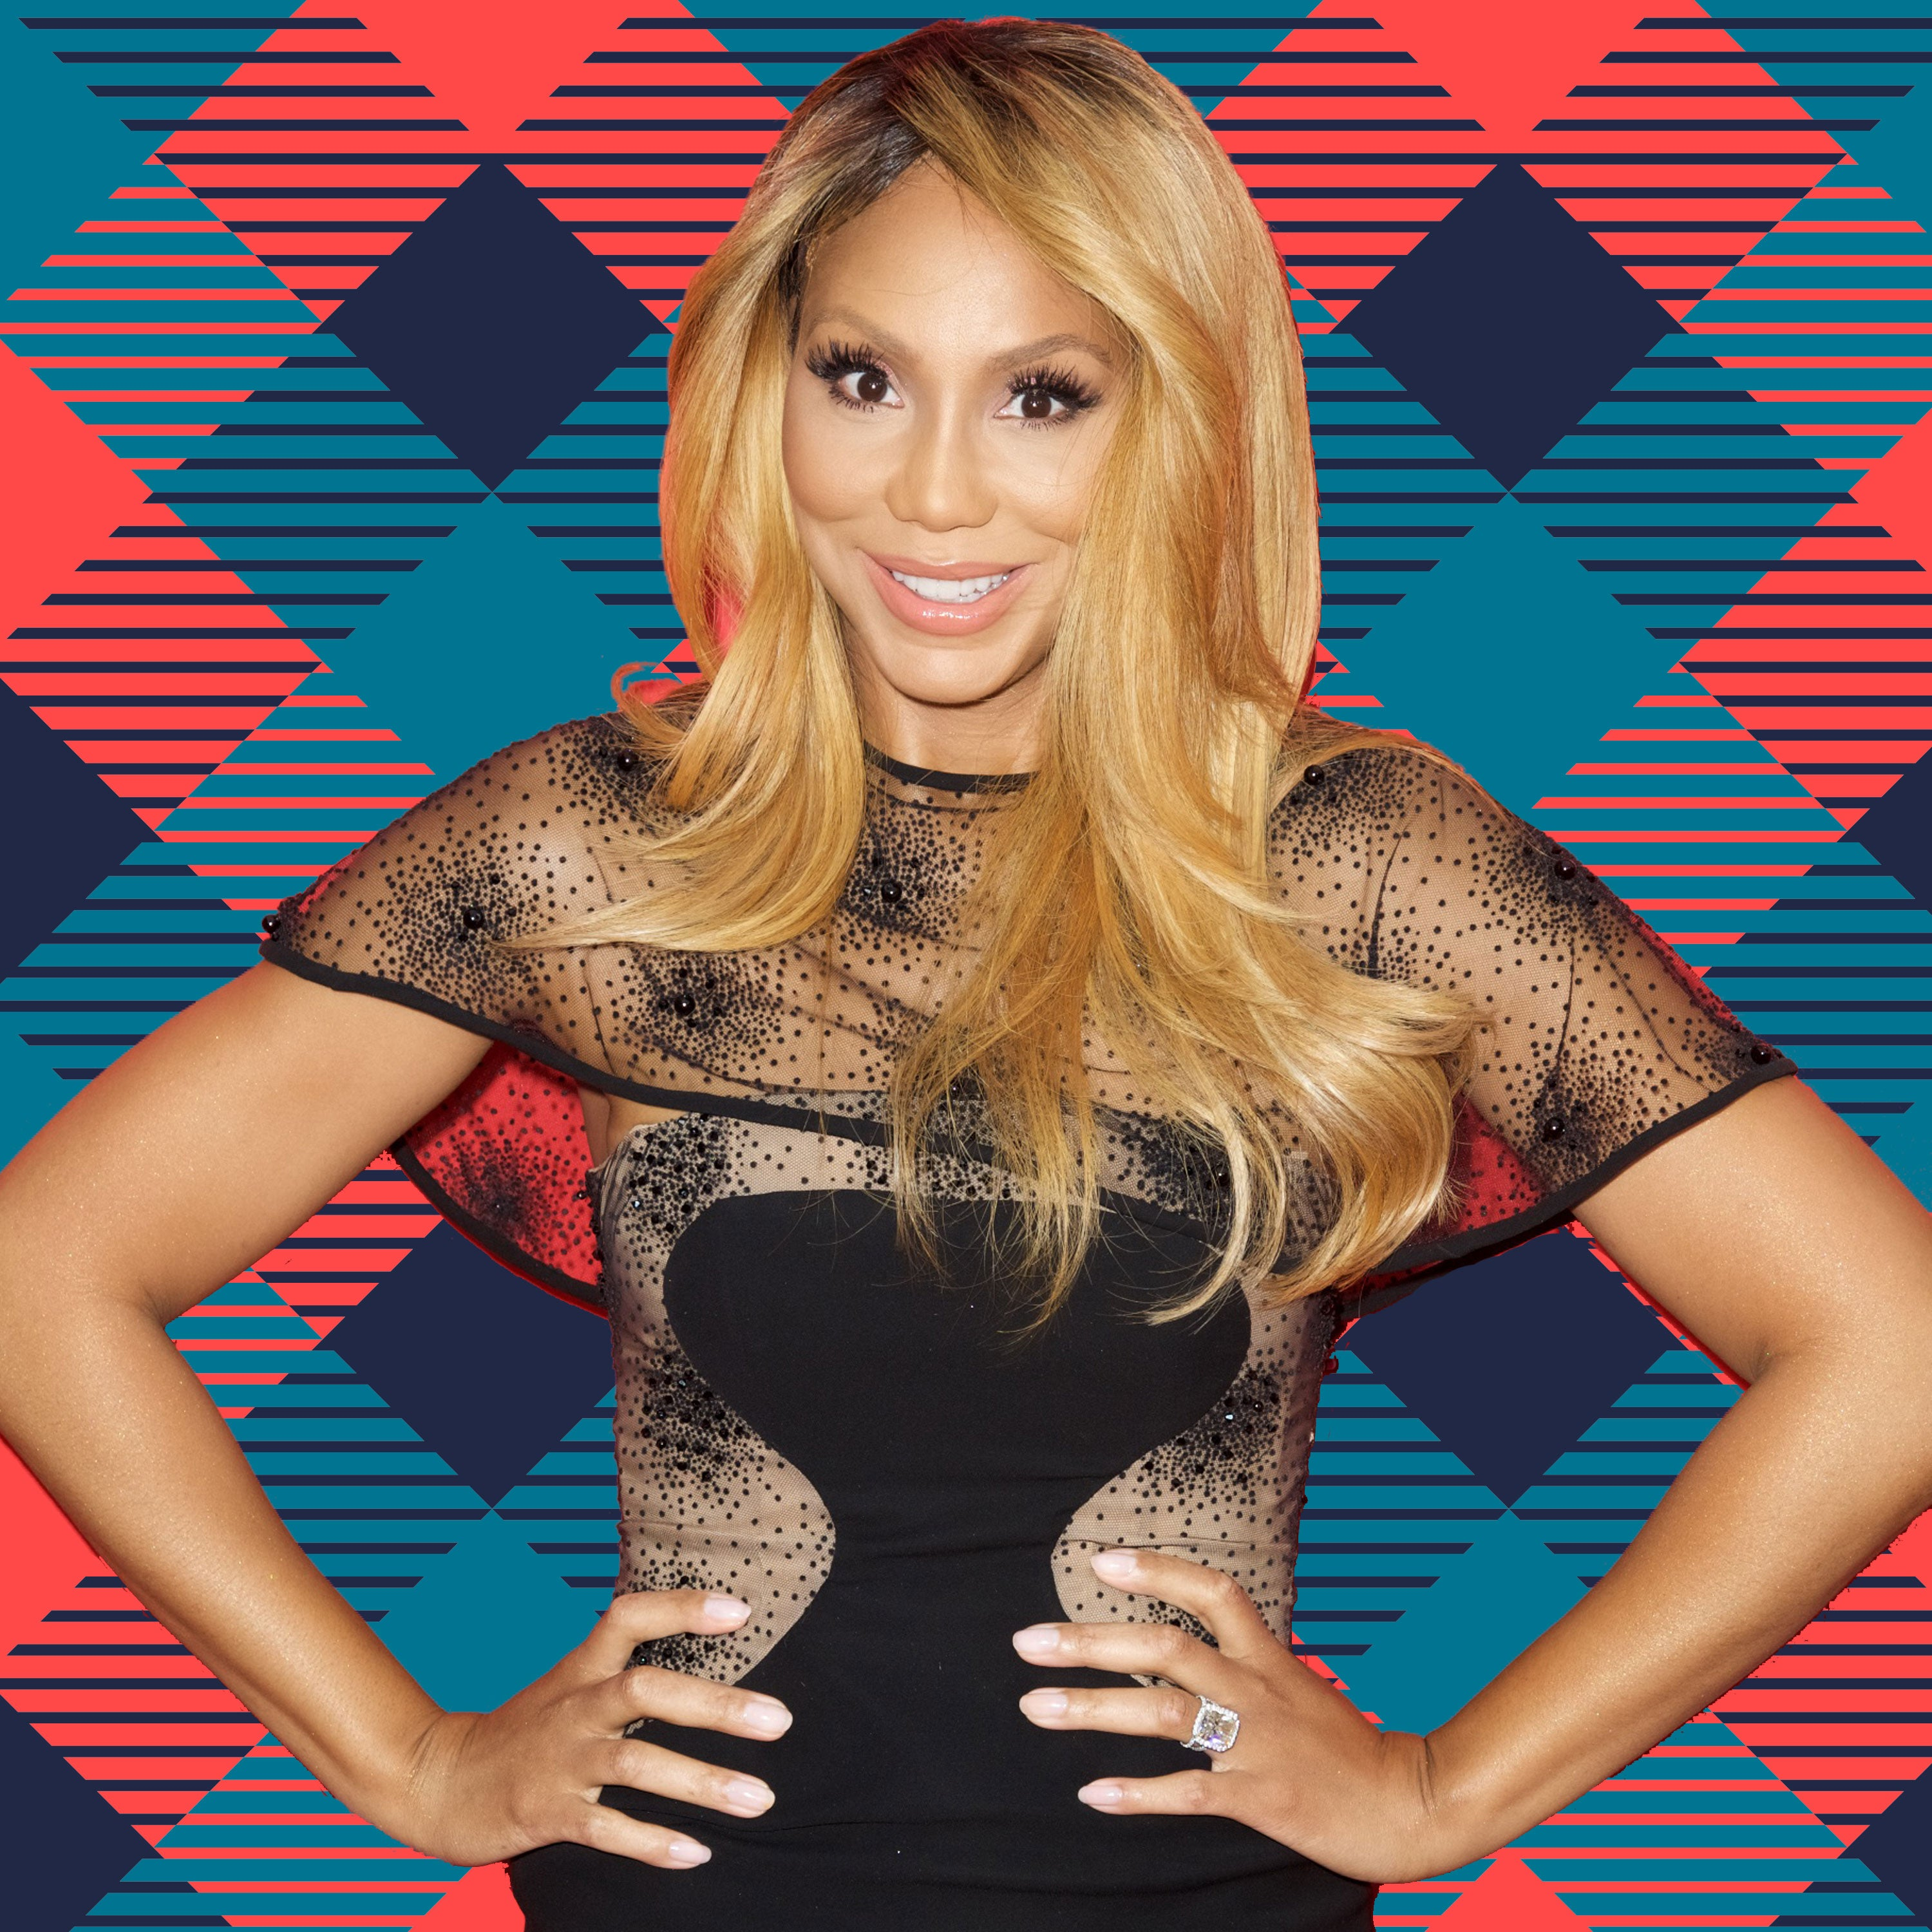 Tamar Braxton Tamar Braxton new photo